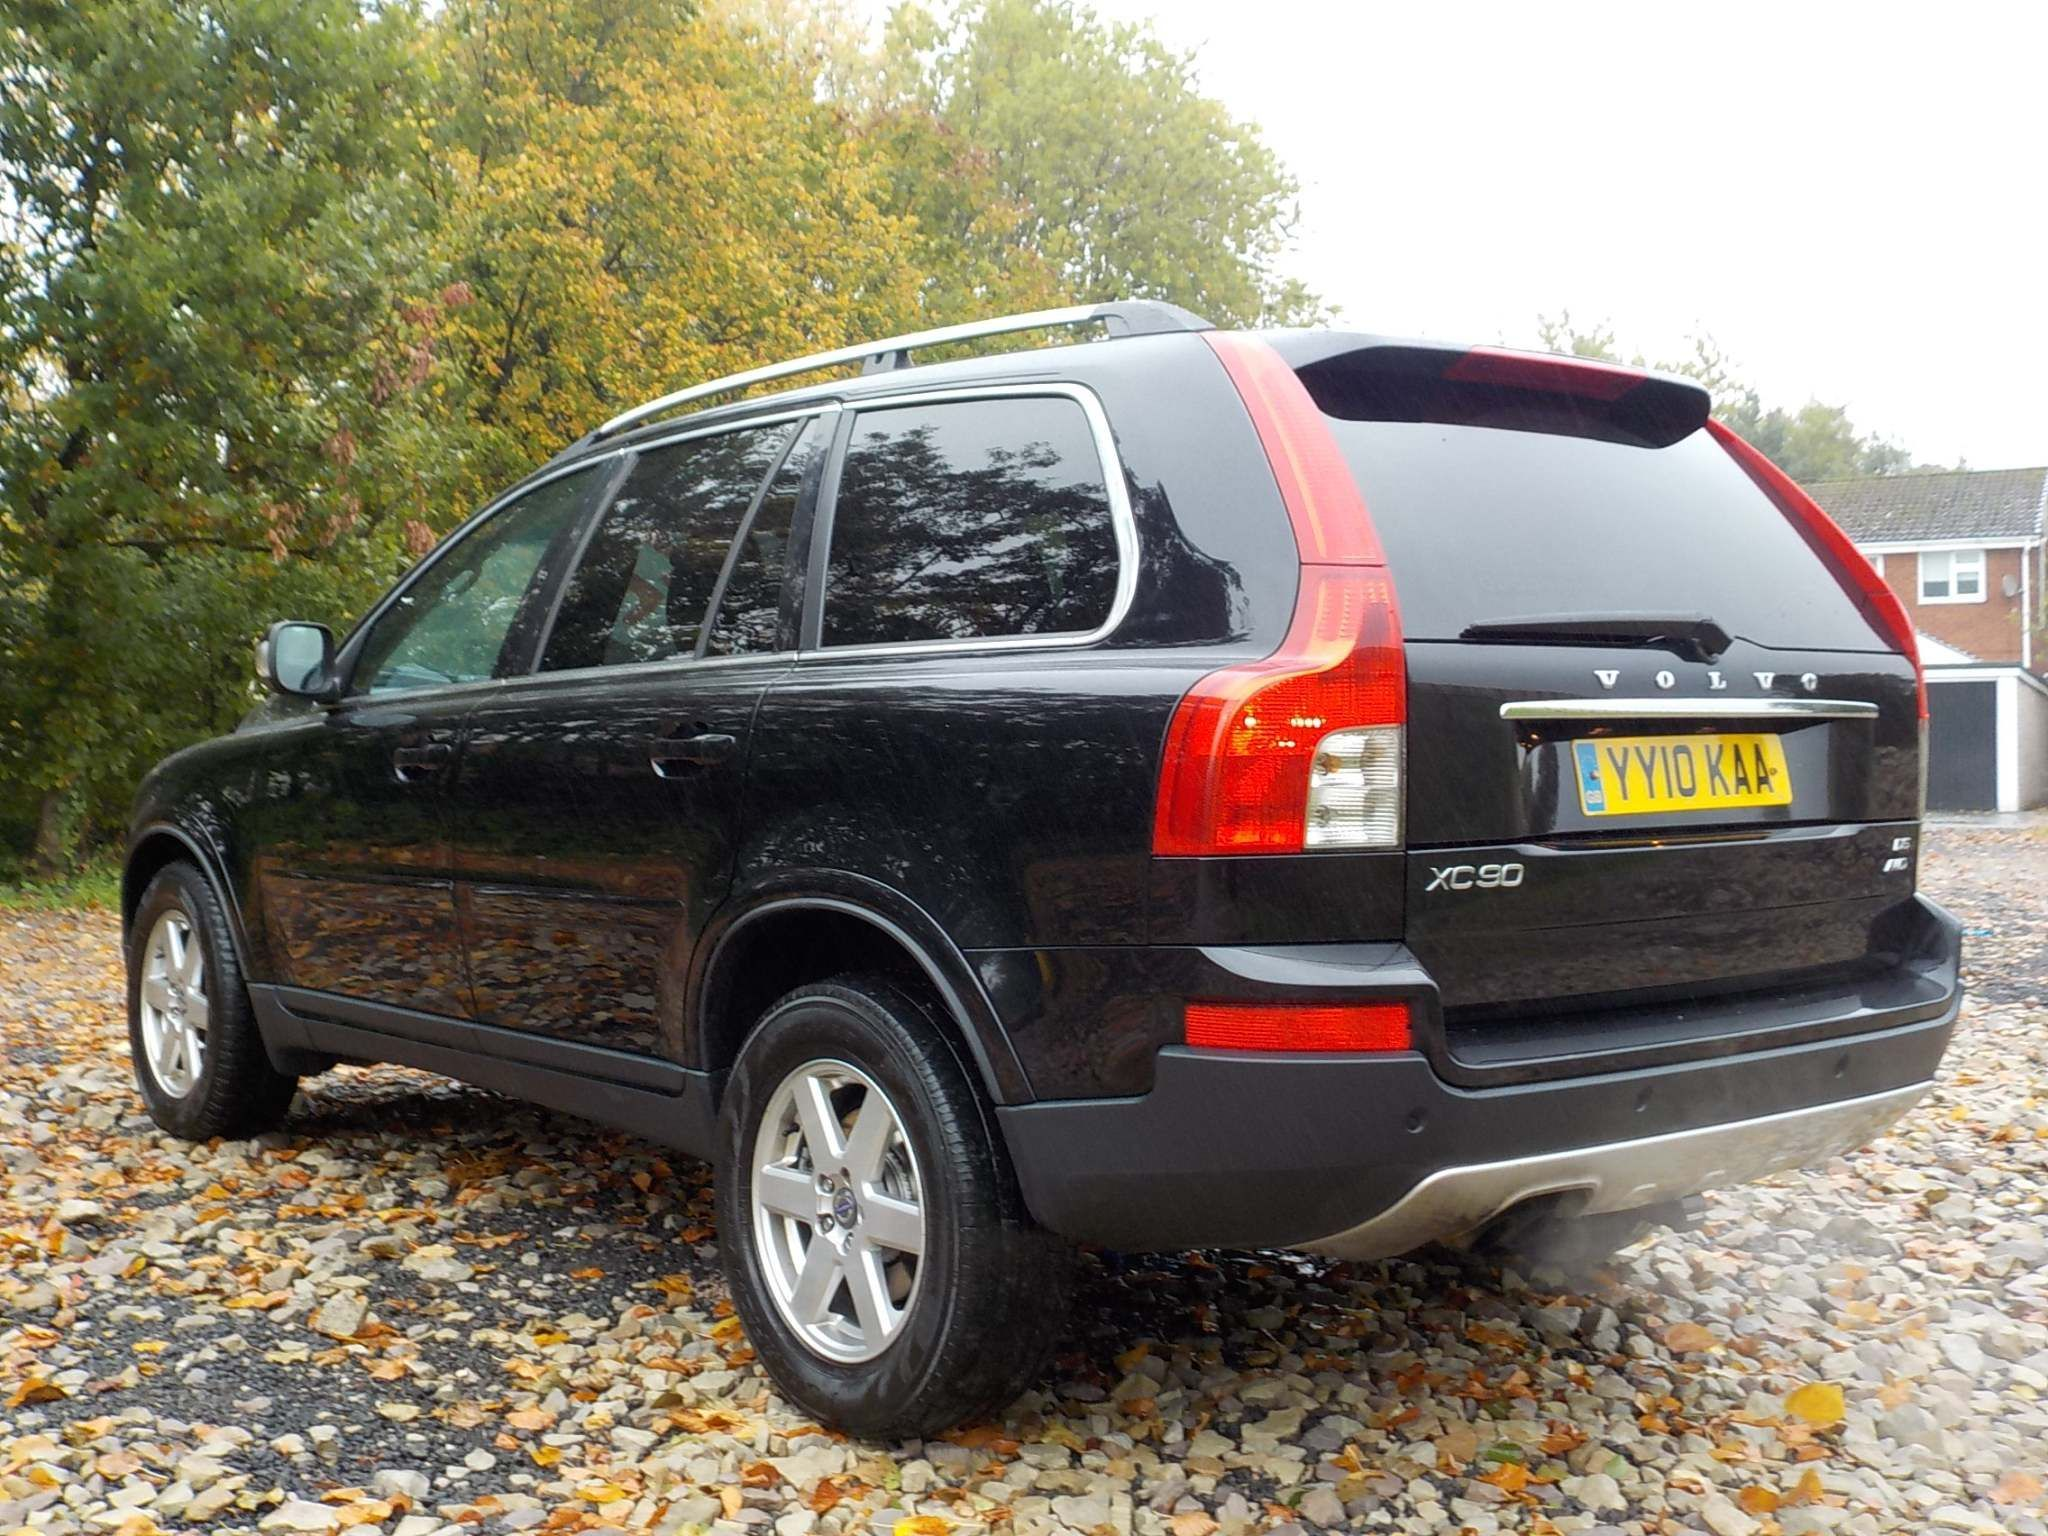 Volvo XC90 2.4 D5 Active Geartronic AWD 5dr